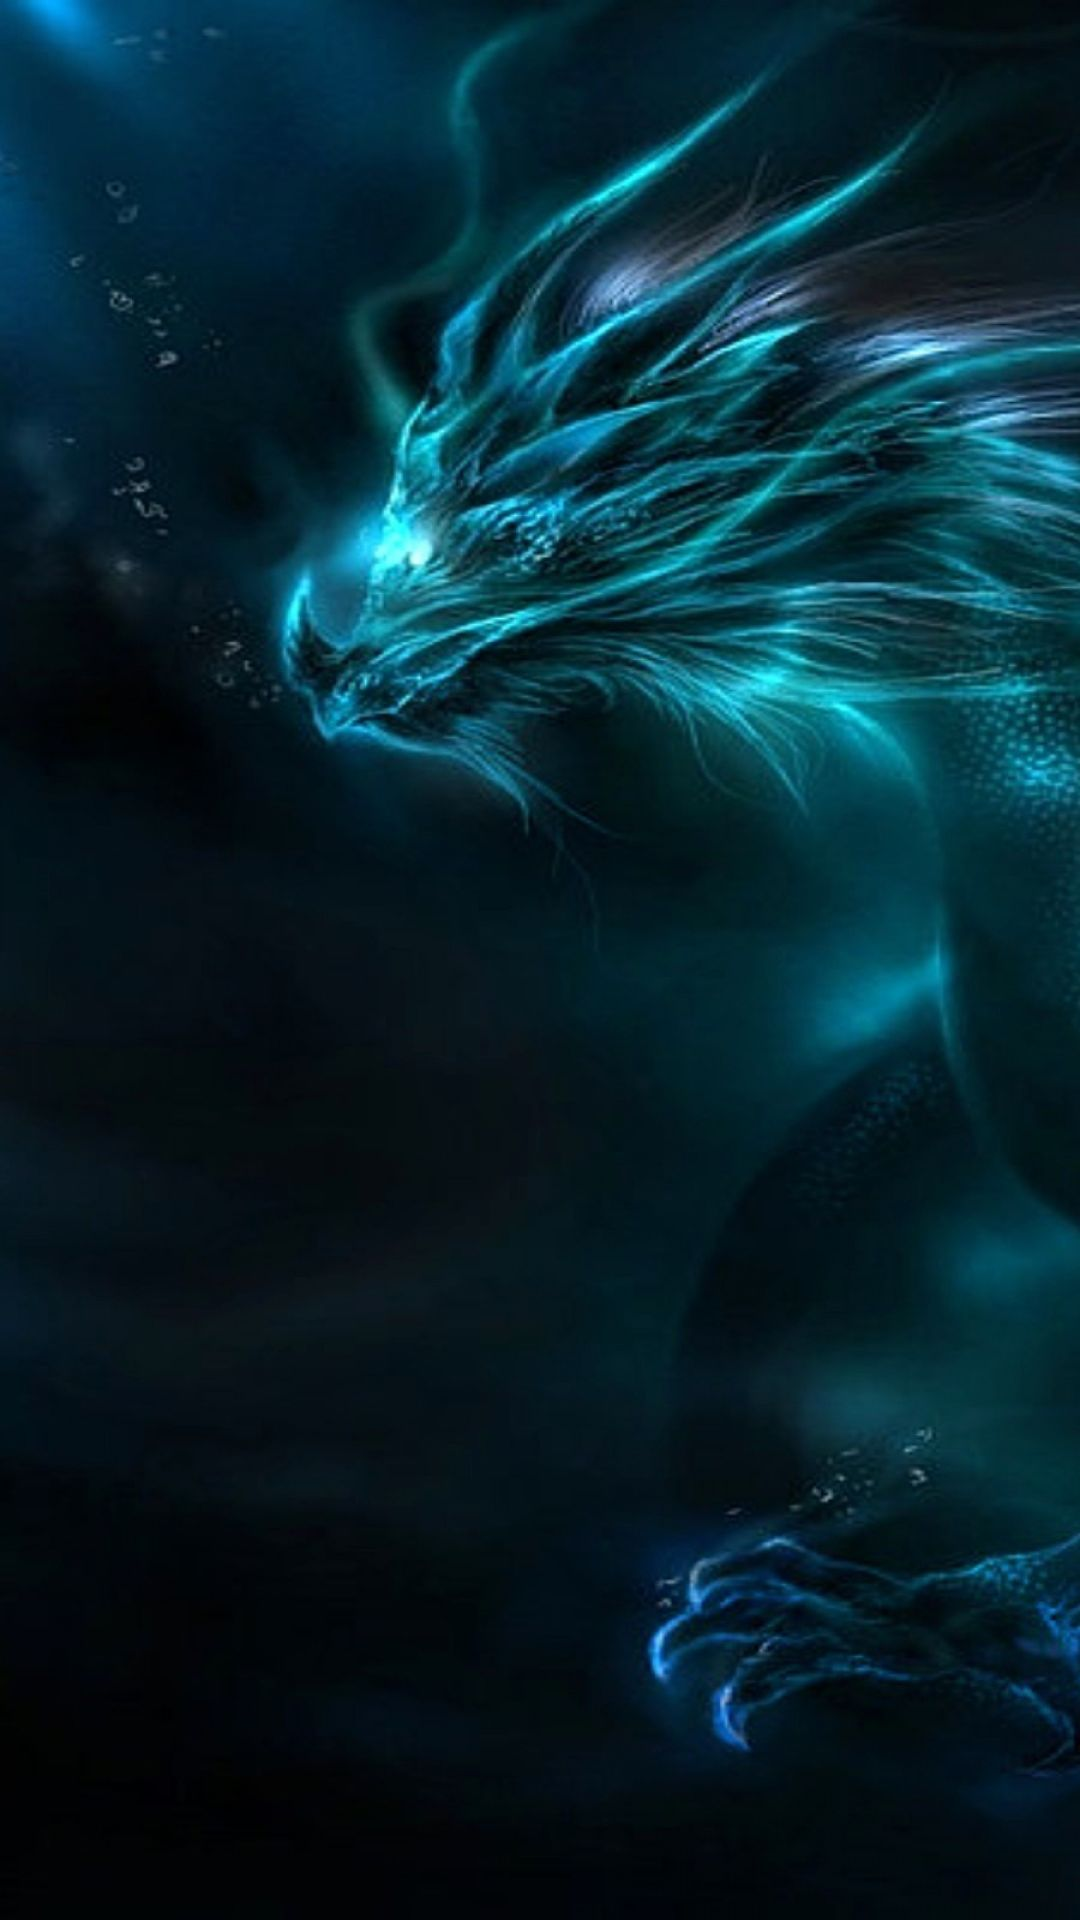 Blue Dragon Wallpaper HD - Android, iPhone, Desktop HD Backgrounds / Wallpapers (1080p, 4k) (387908) - Dreamy / Fantasy